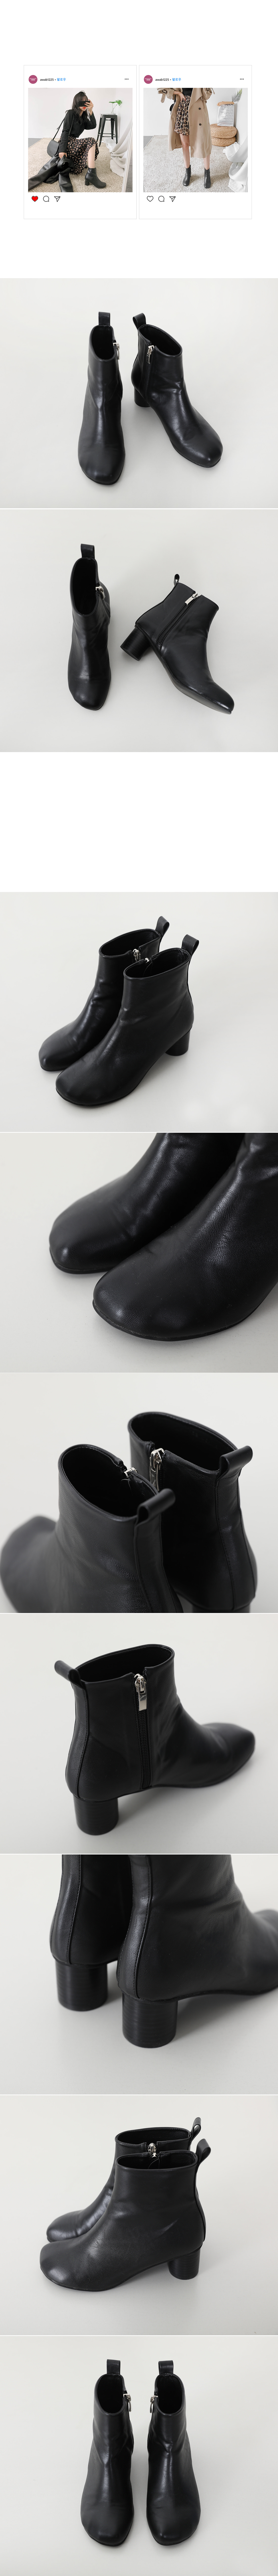 Eco Leather Ankle Boots